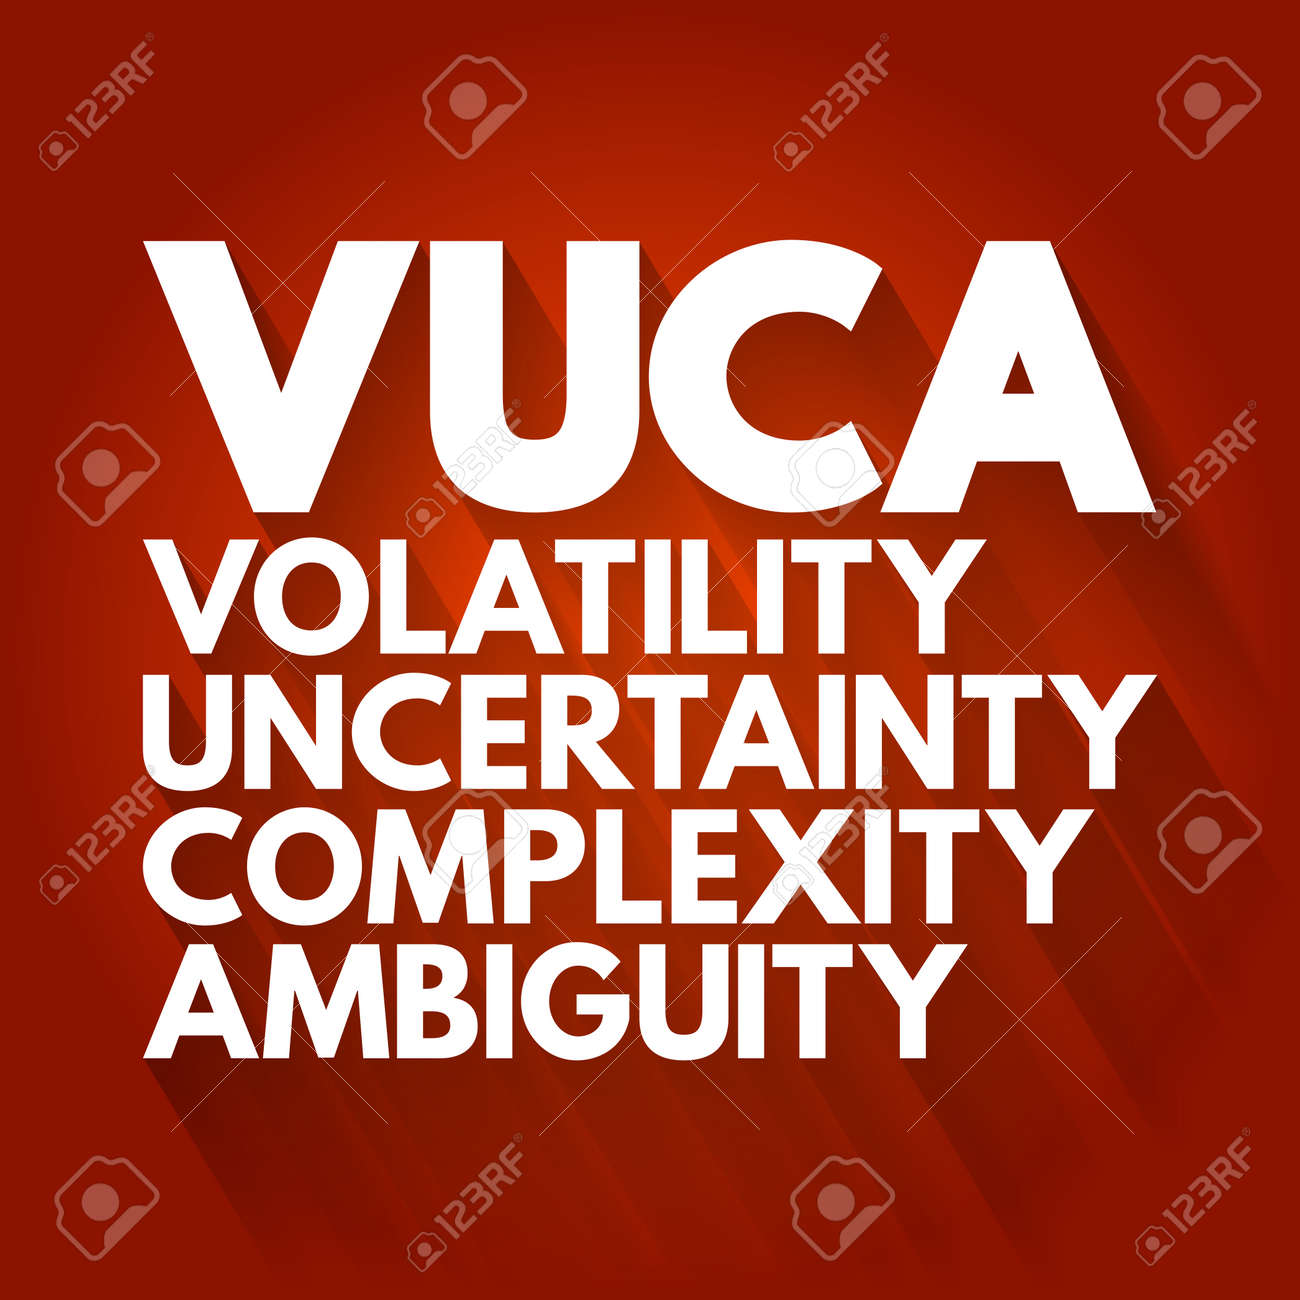 VUCA - Volatility, Uncertainty, Complexity, Ambiguity acronym, business concept background - 166149419